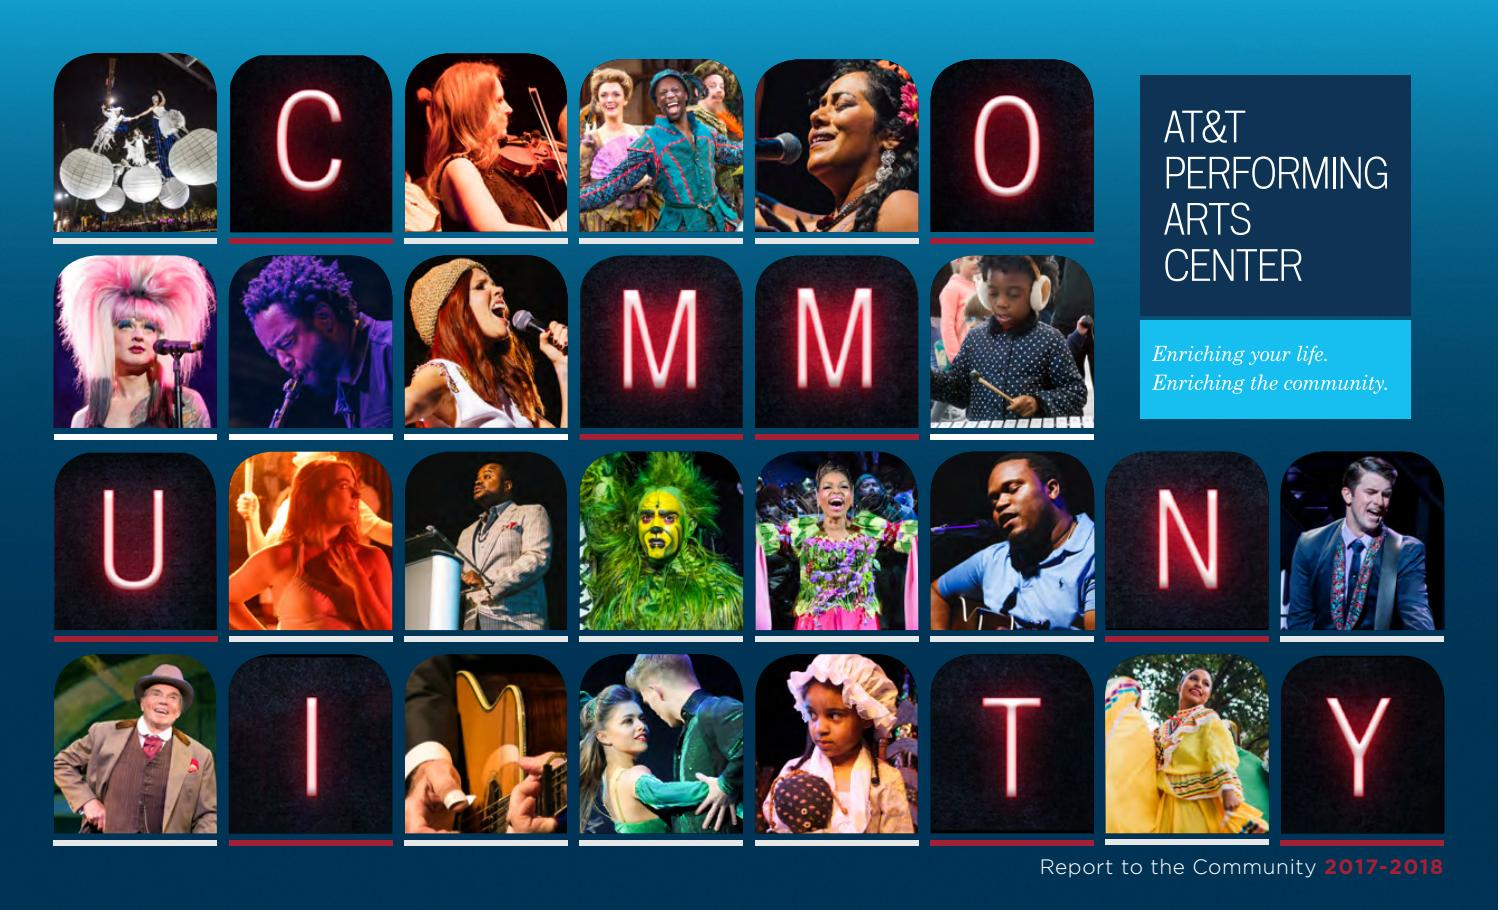 AT&T Performing Arts Center Annual Report To The Community